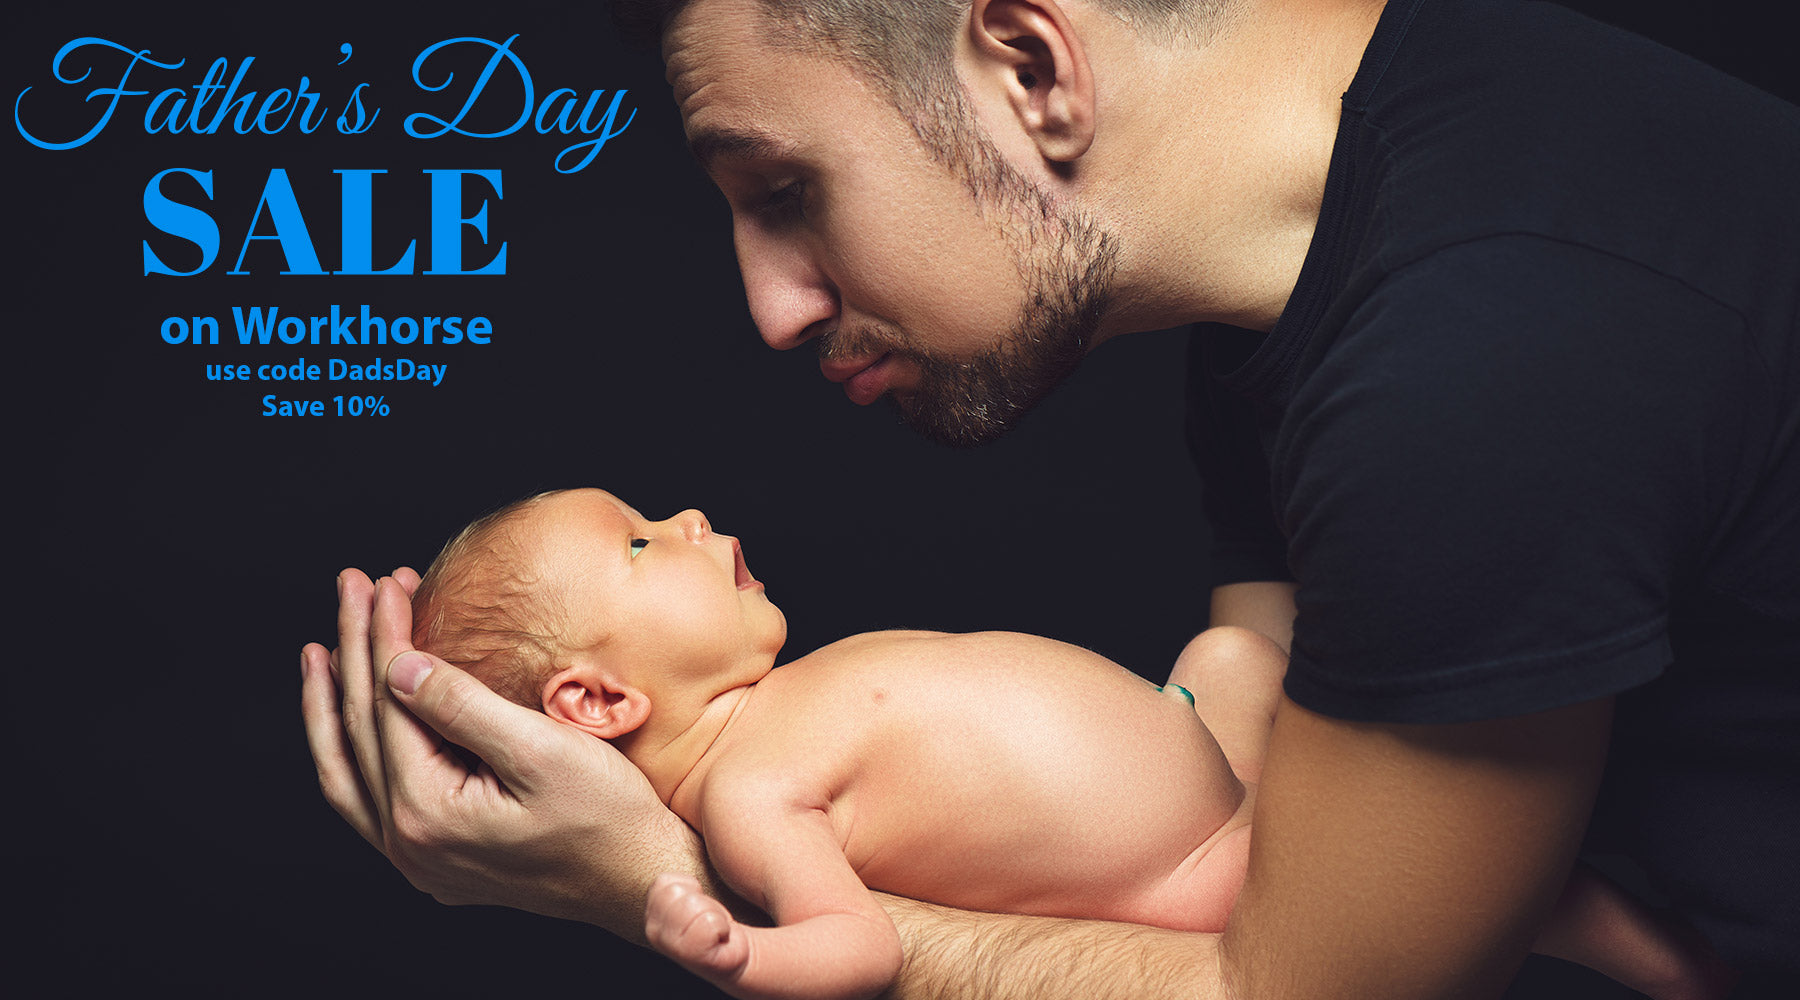 Father's day sale on Workhorse father holding newborn baby